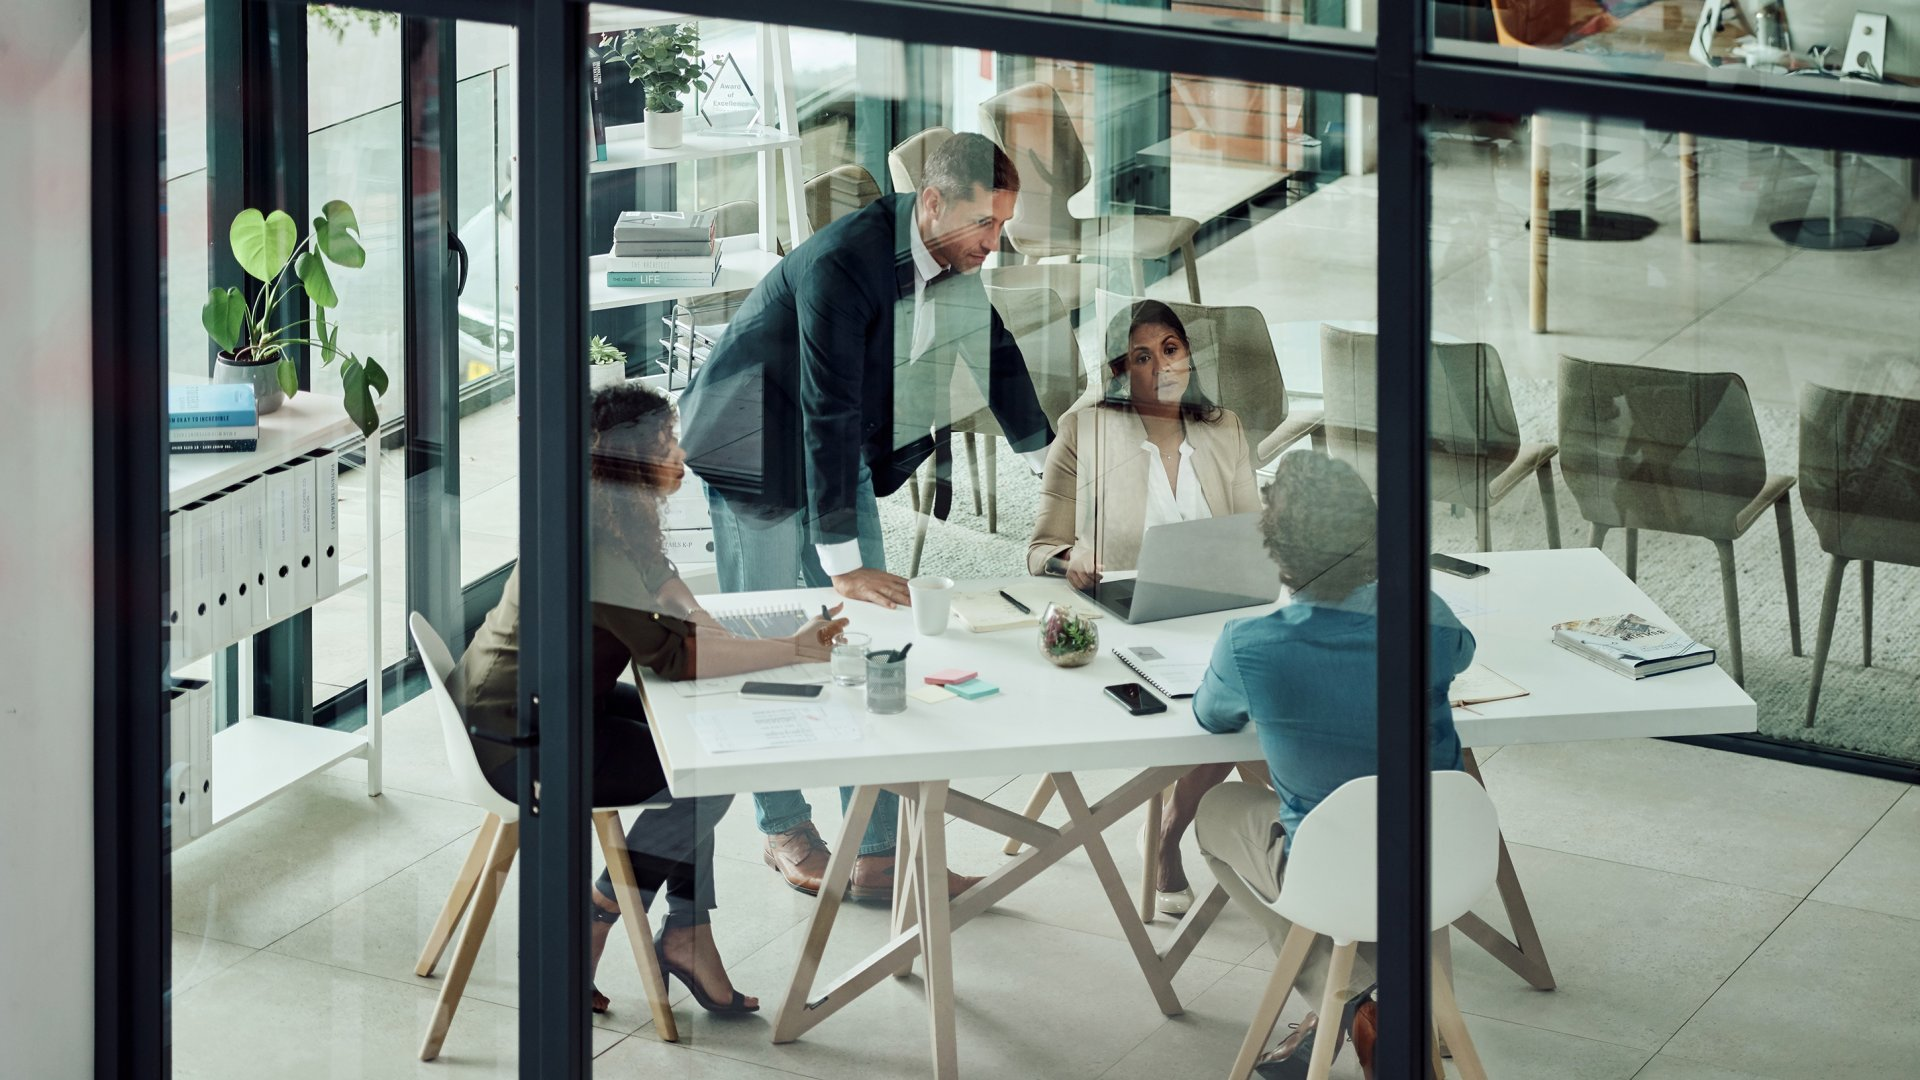 Three Ways to Have Difficult Conversations With Your Team